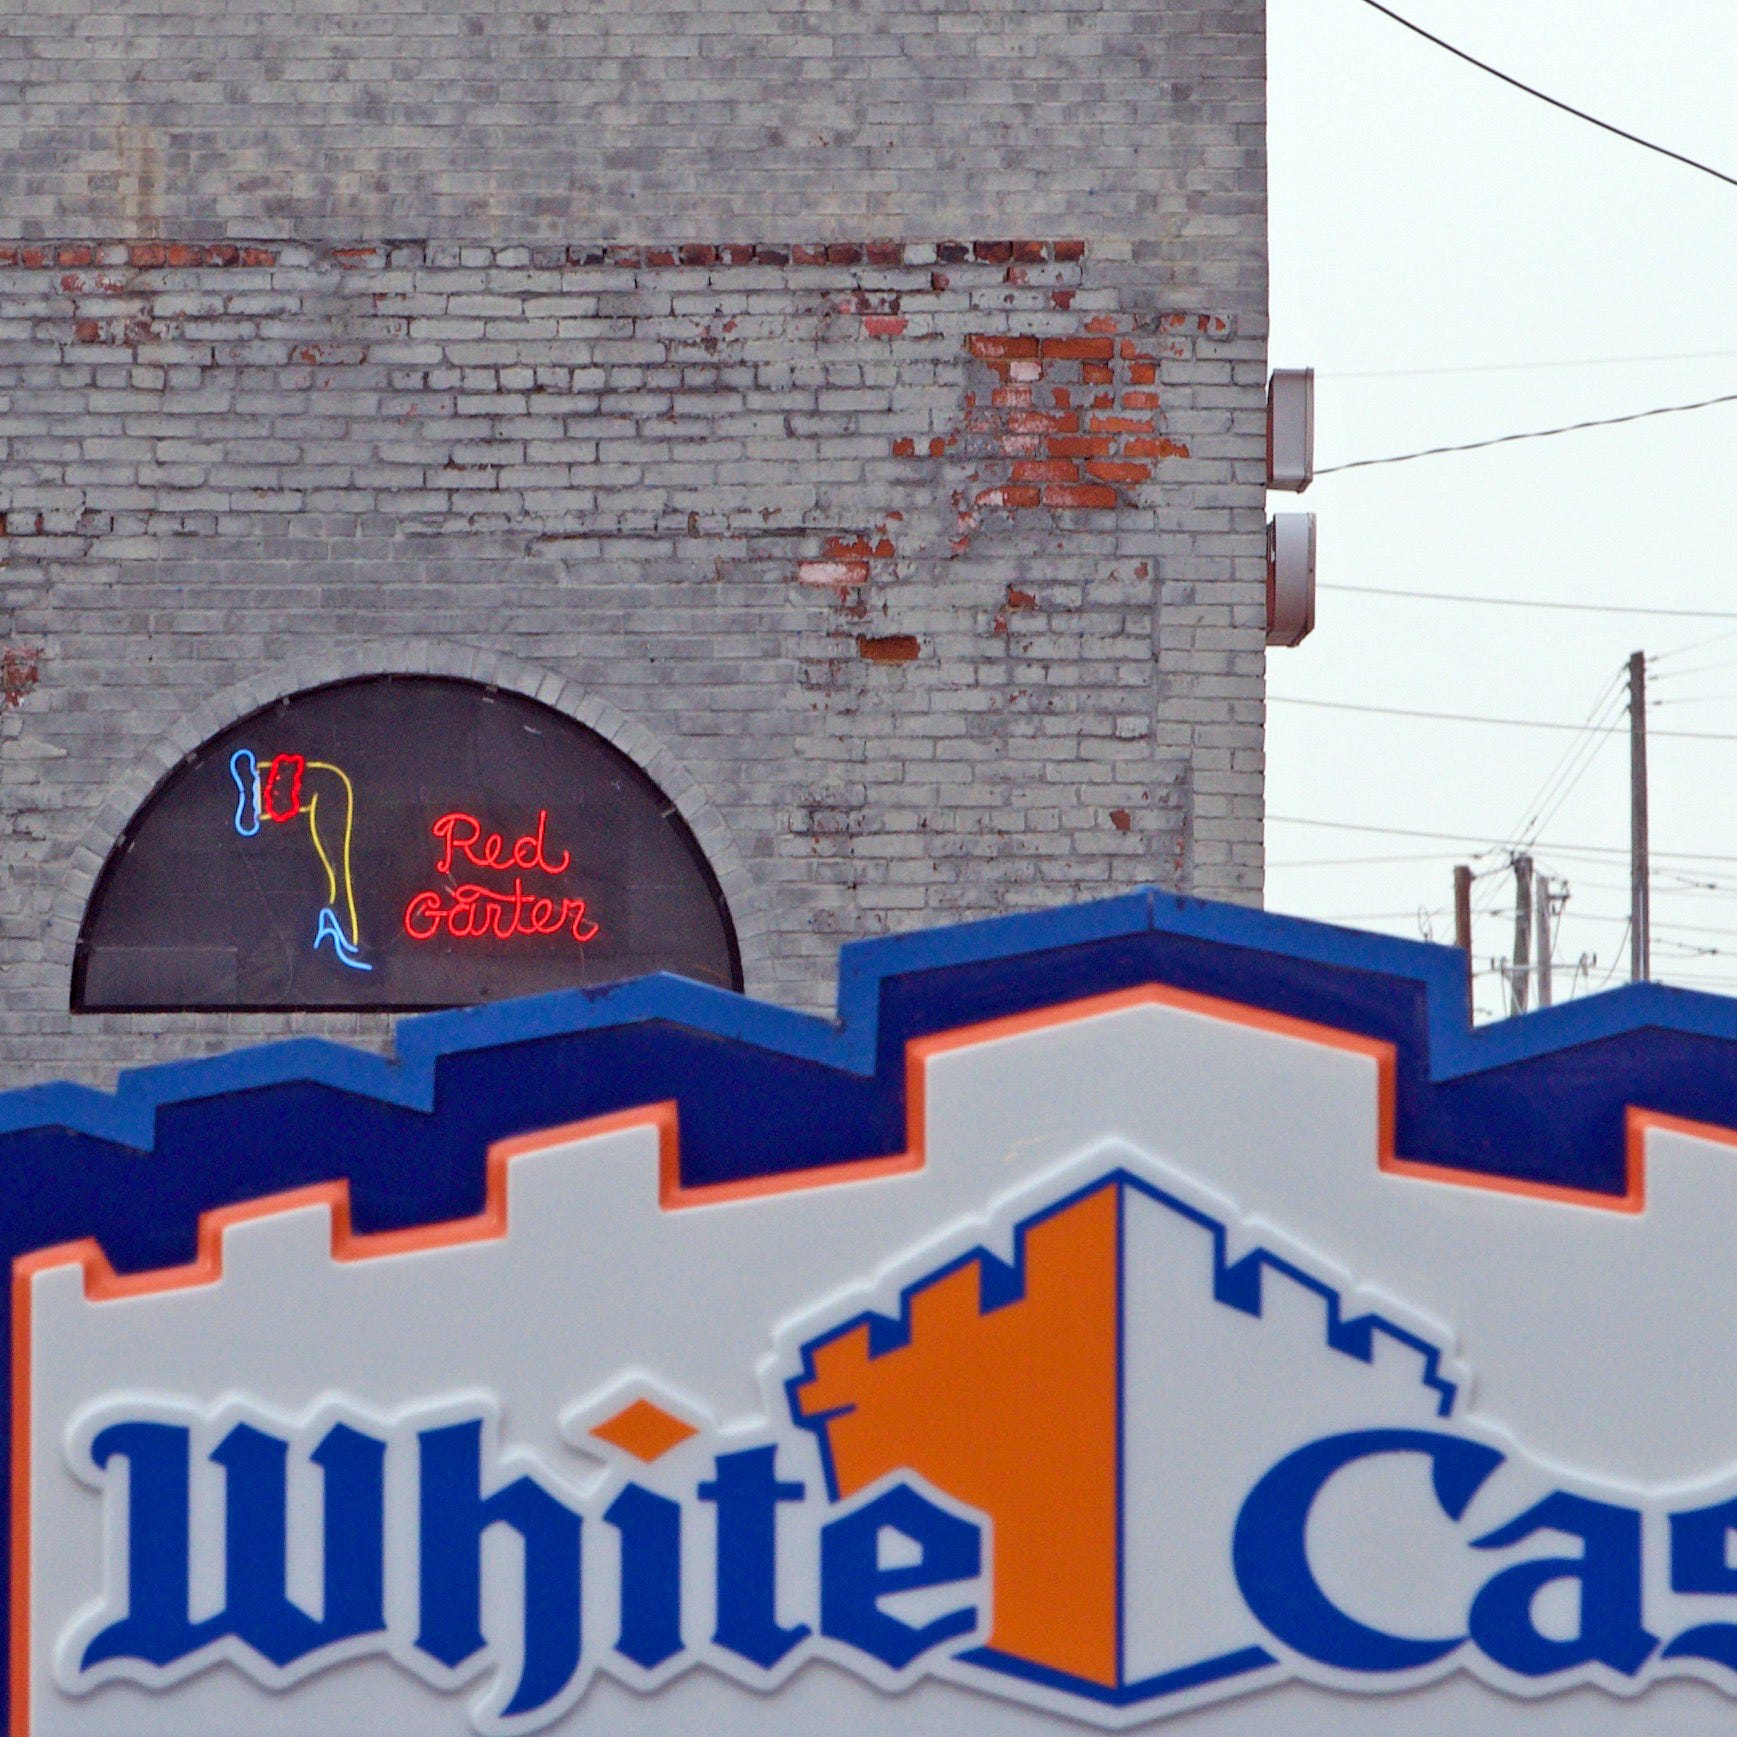 Police: 2 judges were shot in White Castle parking lot after 'physical fight' with group